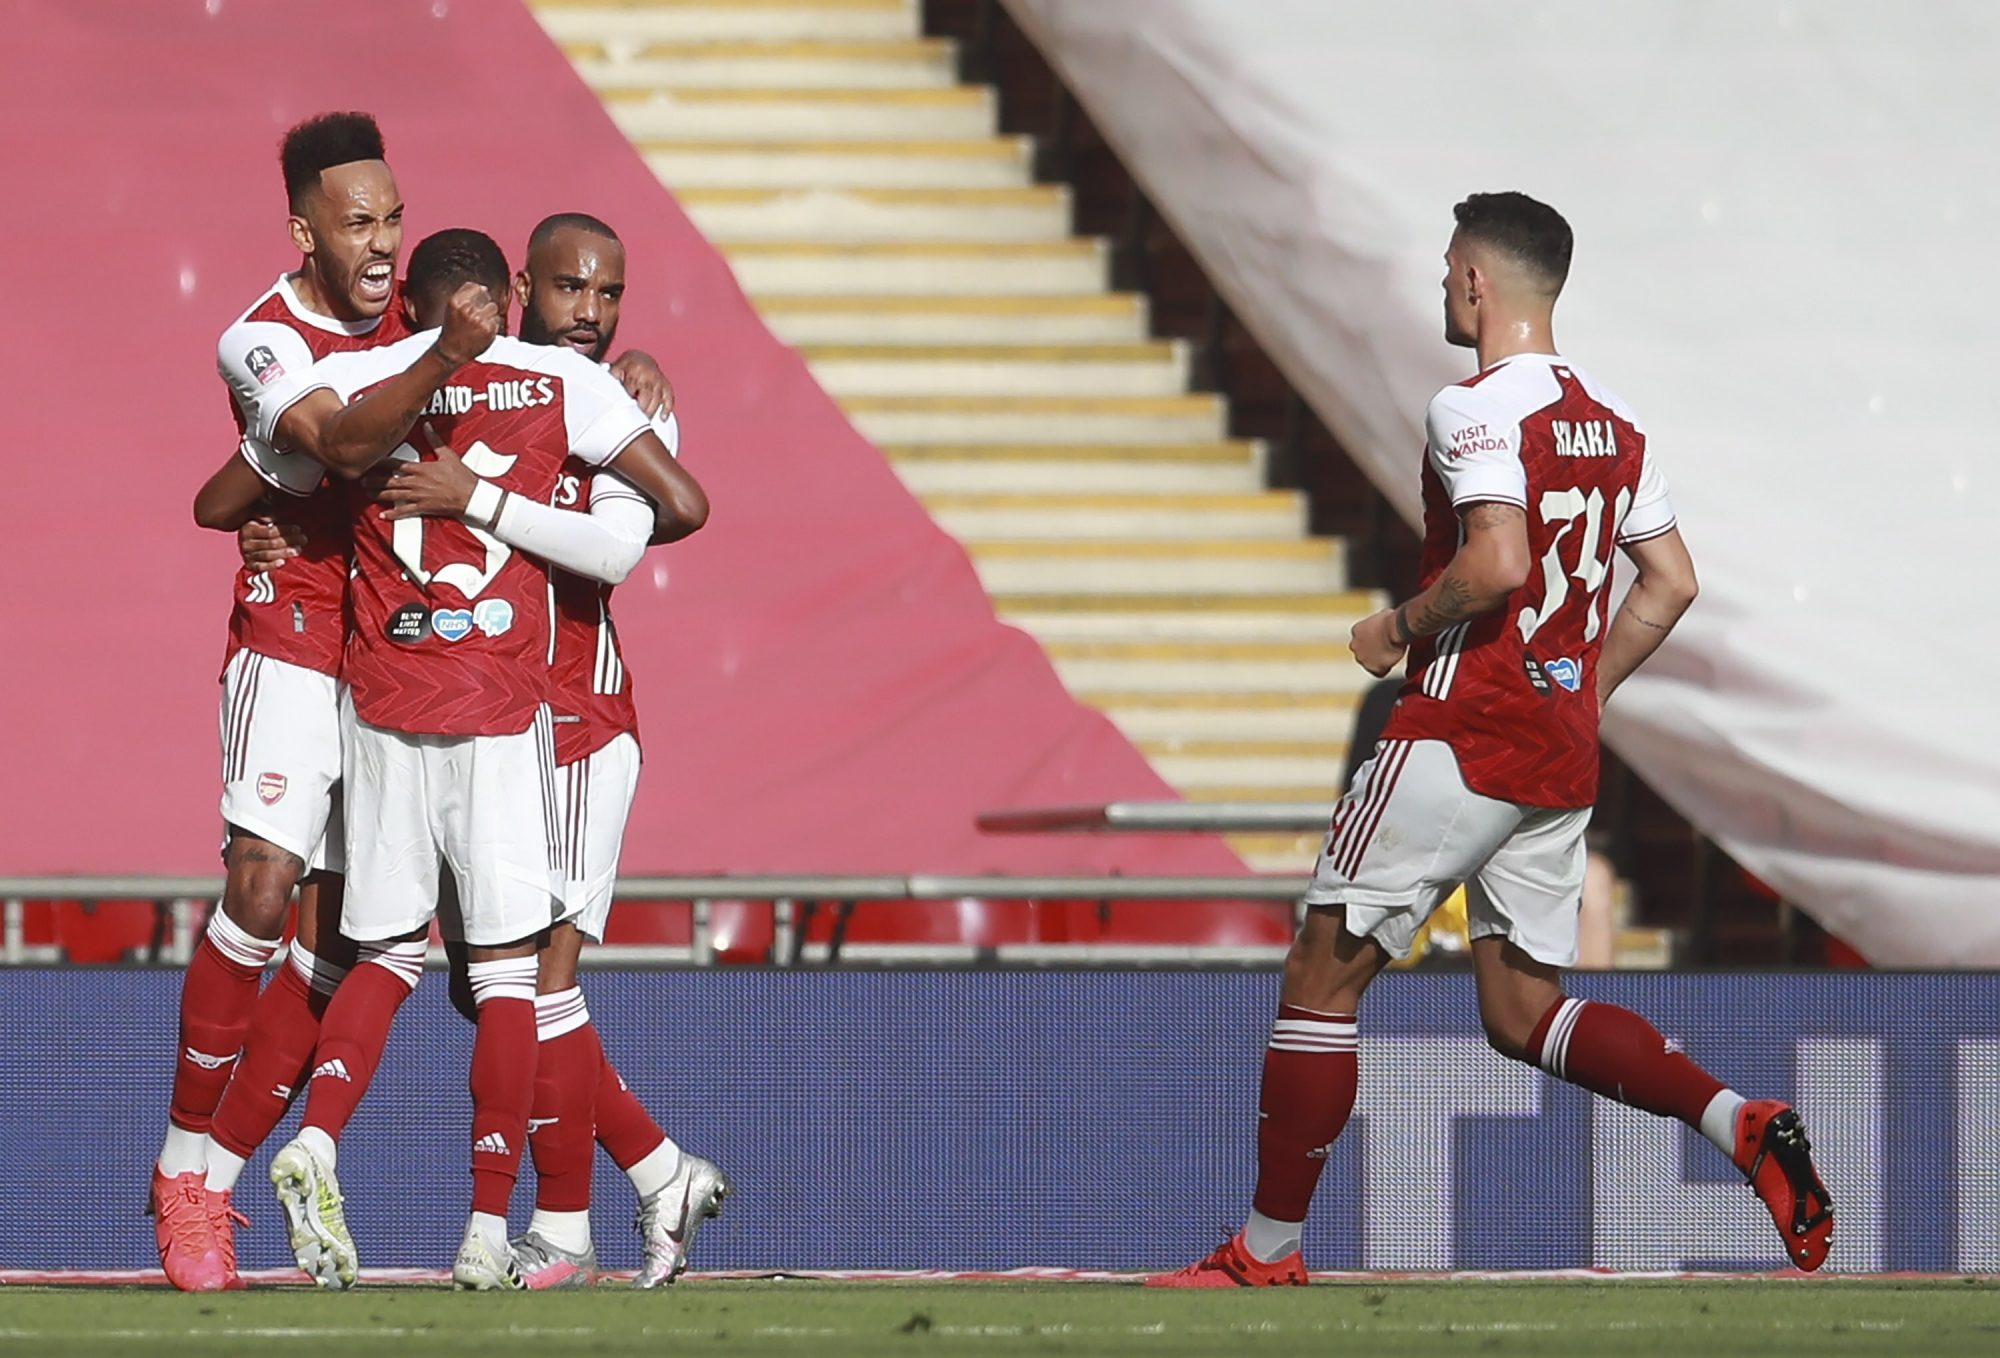 FA Cup final: Arsenal beats Chelsea 2-1